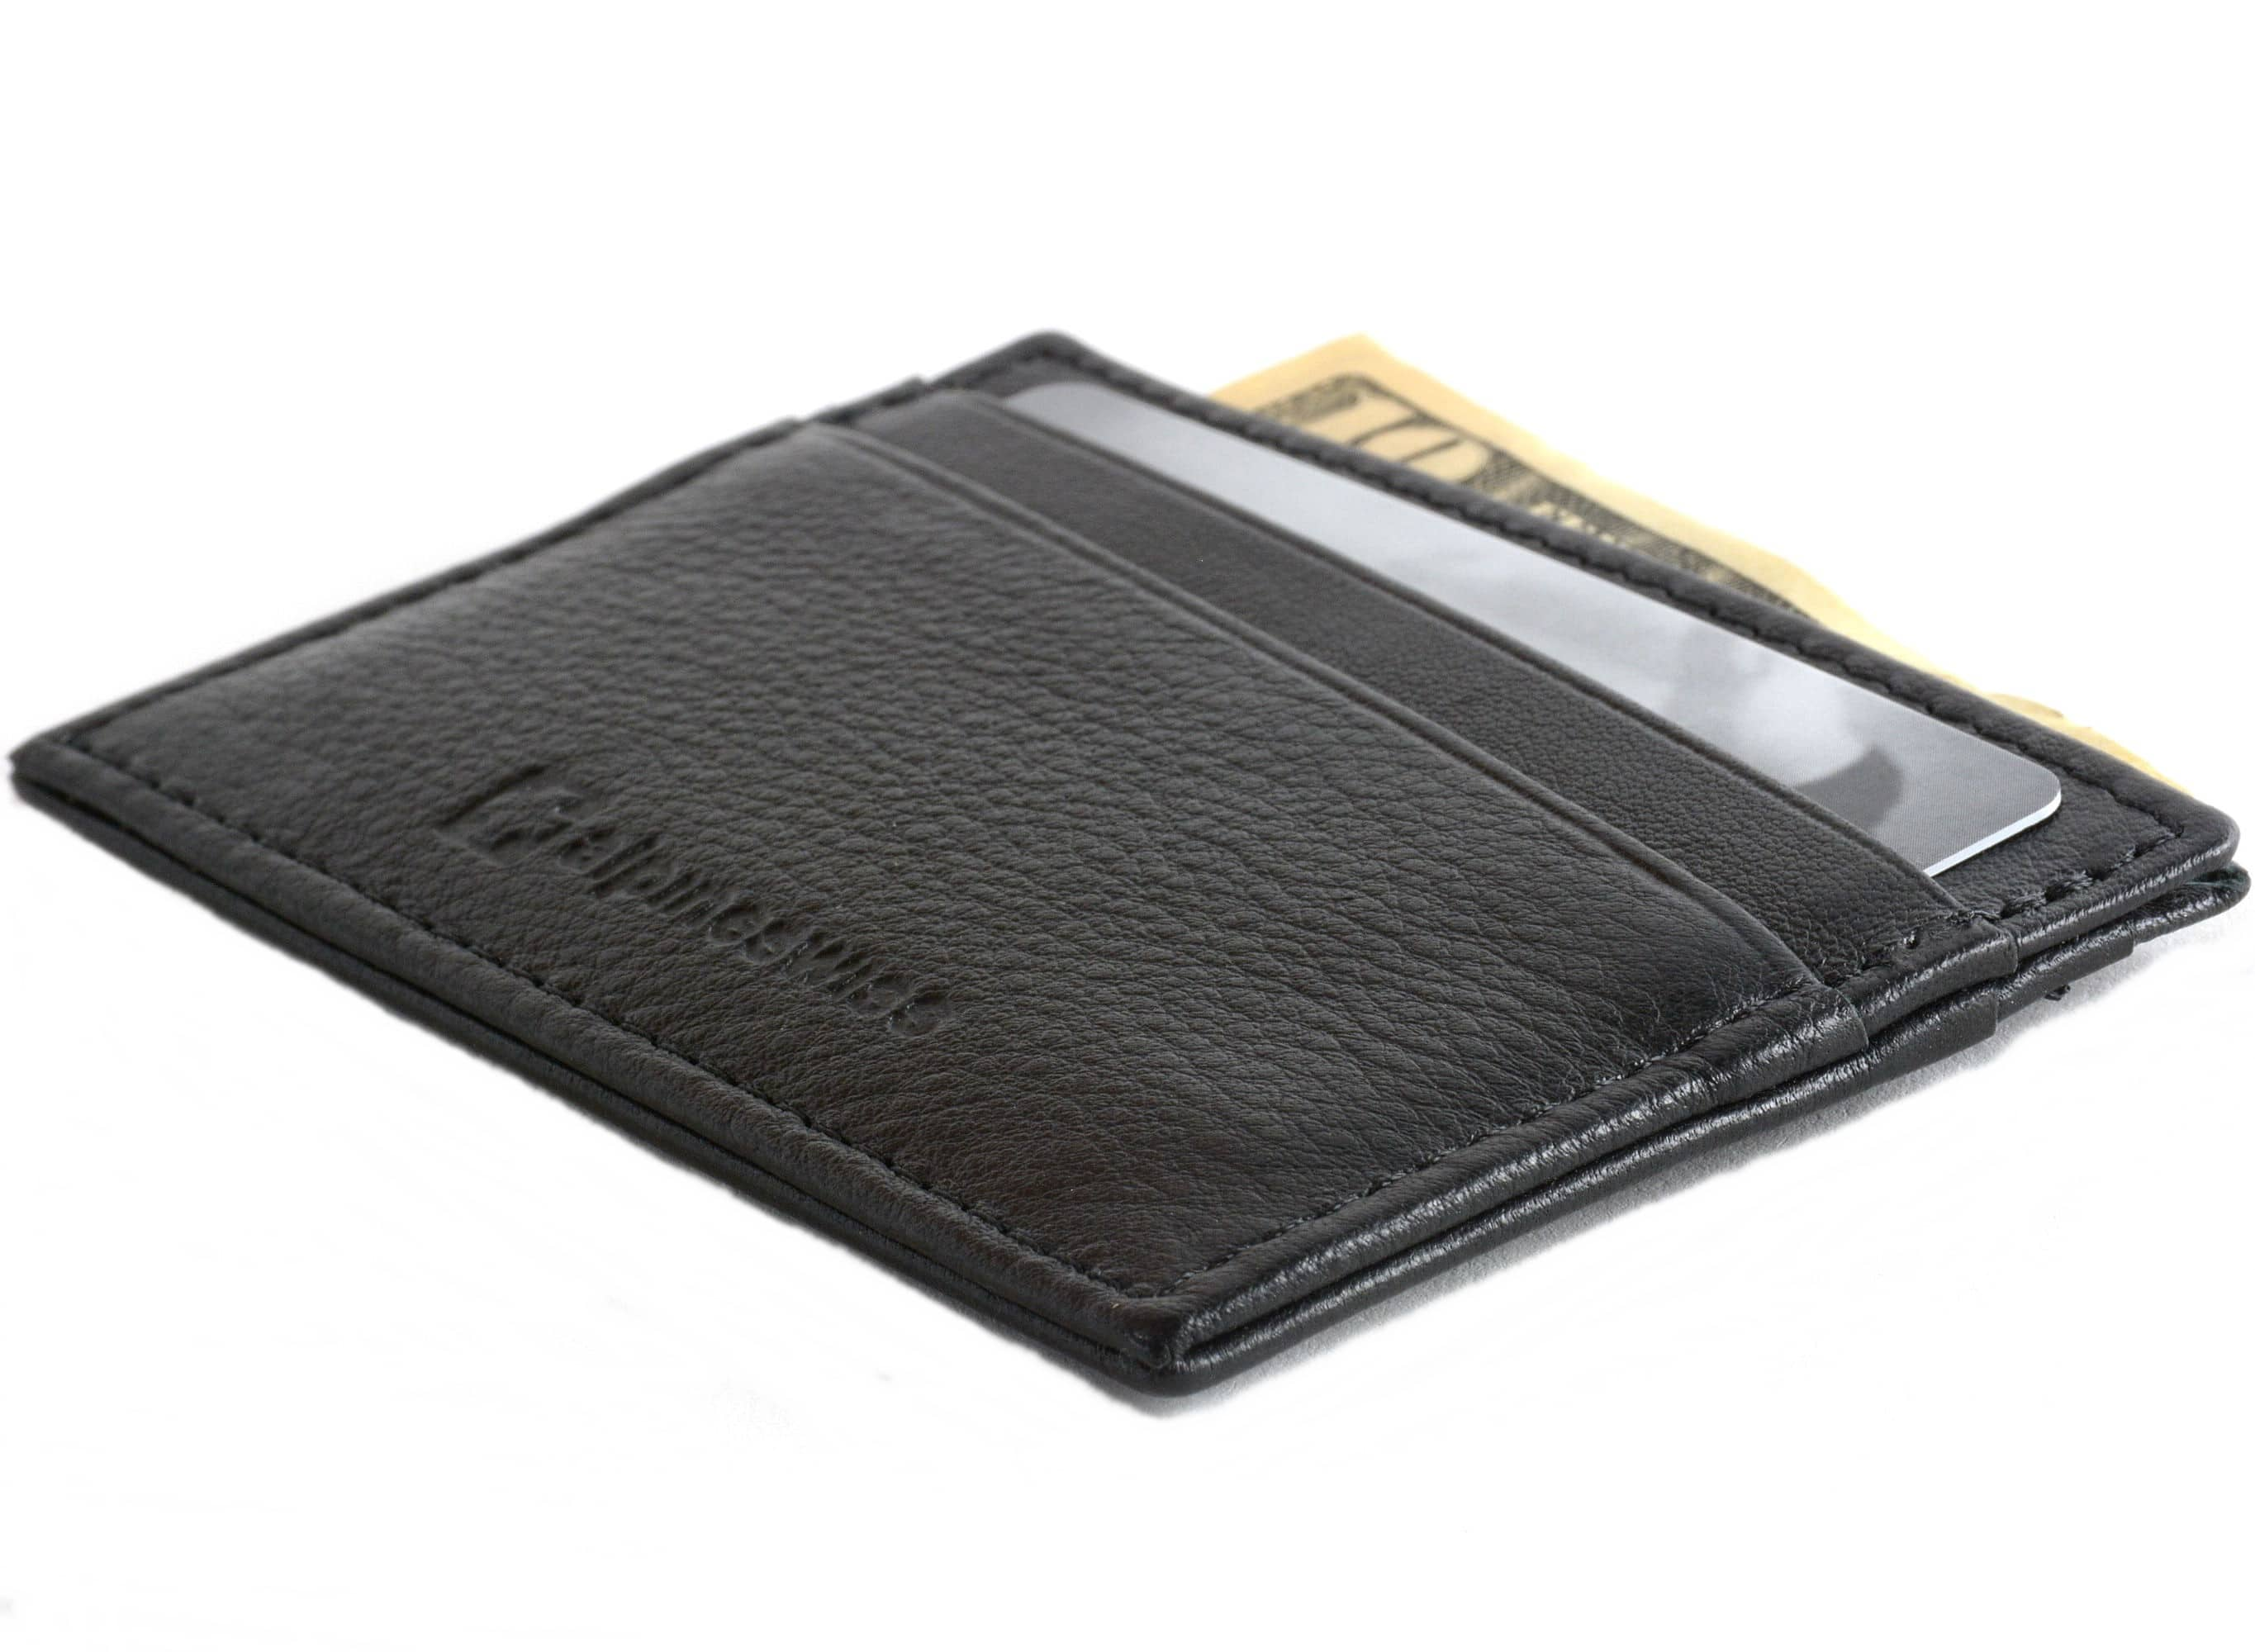 Alpine Swiss Minimalist Slim Thin Leather Front Pocket Wallet $5 or Less w/ Free Shipping And More